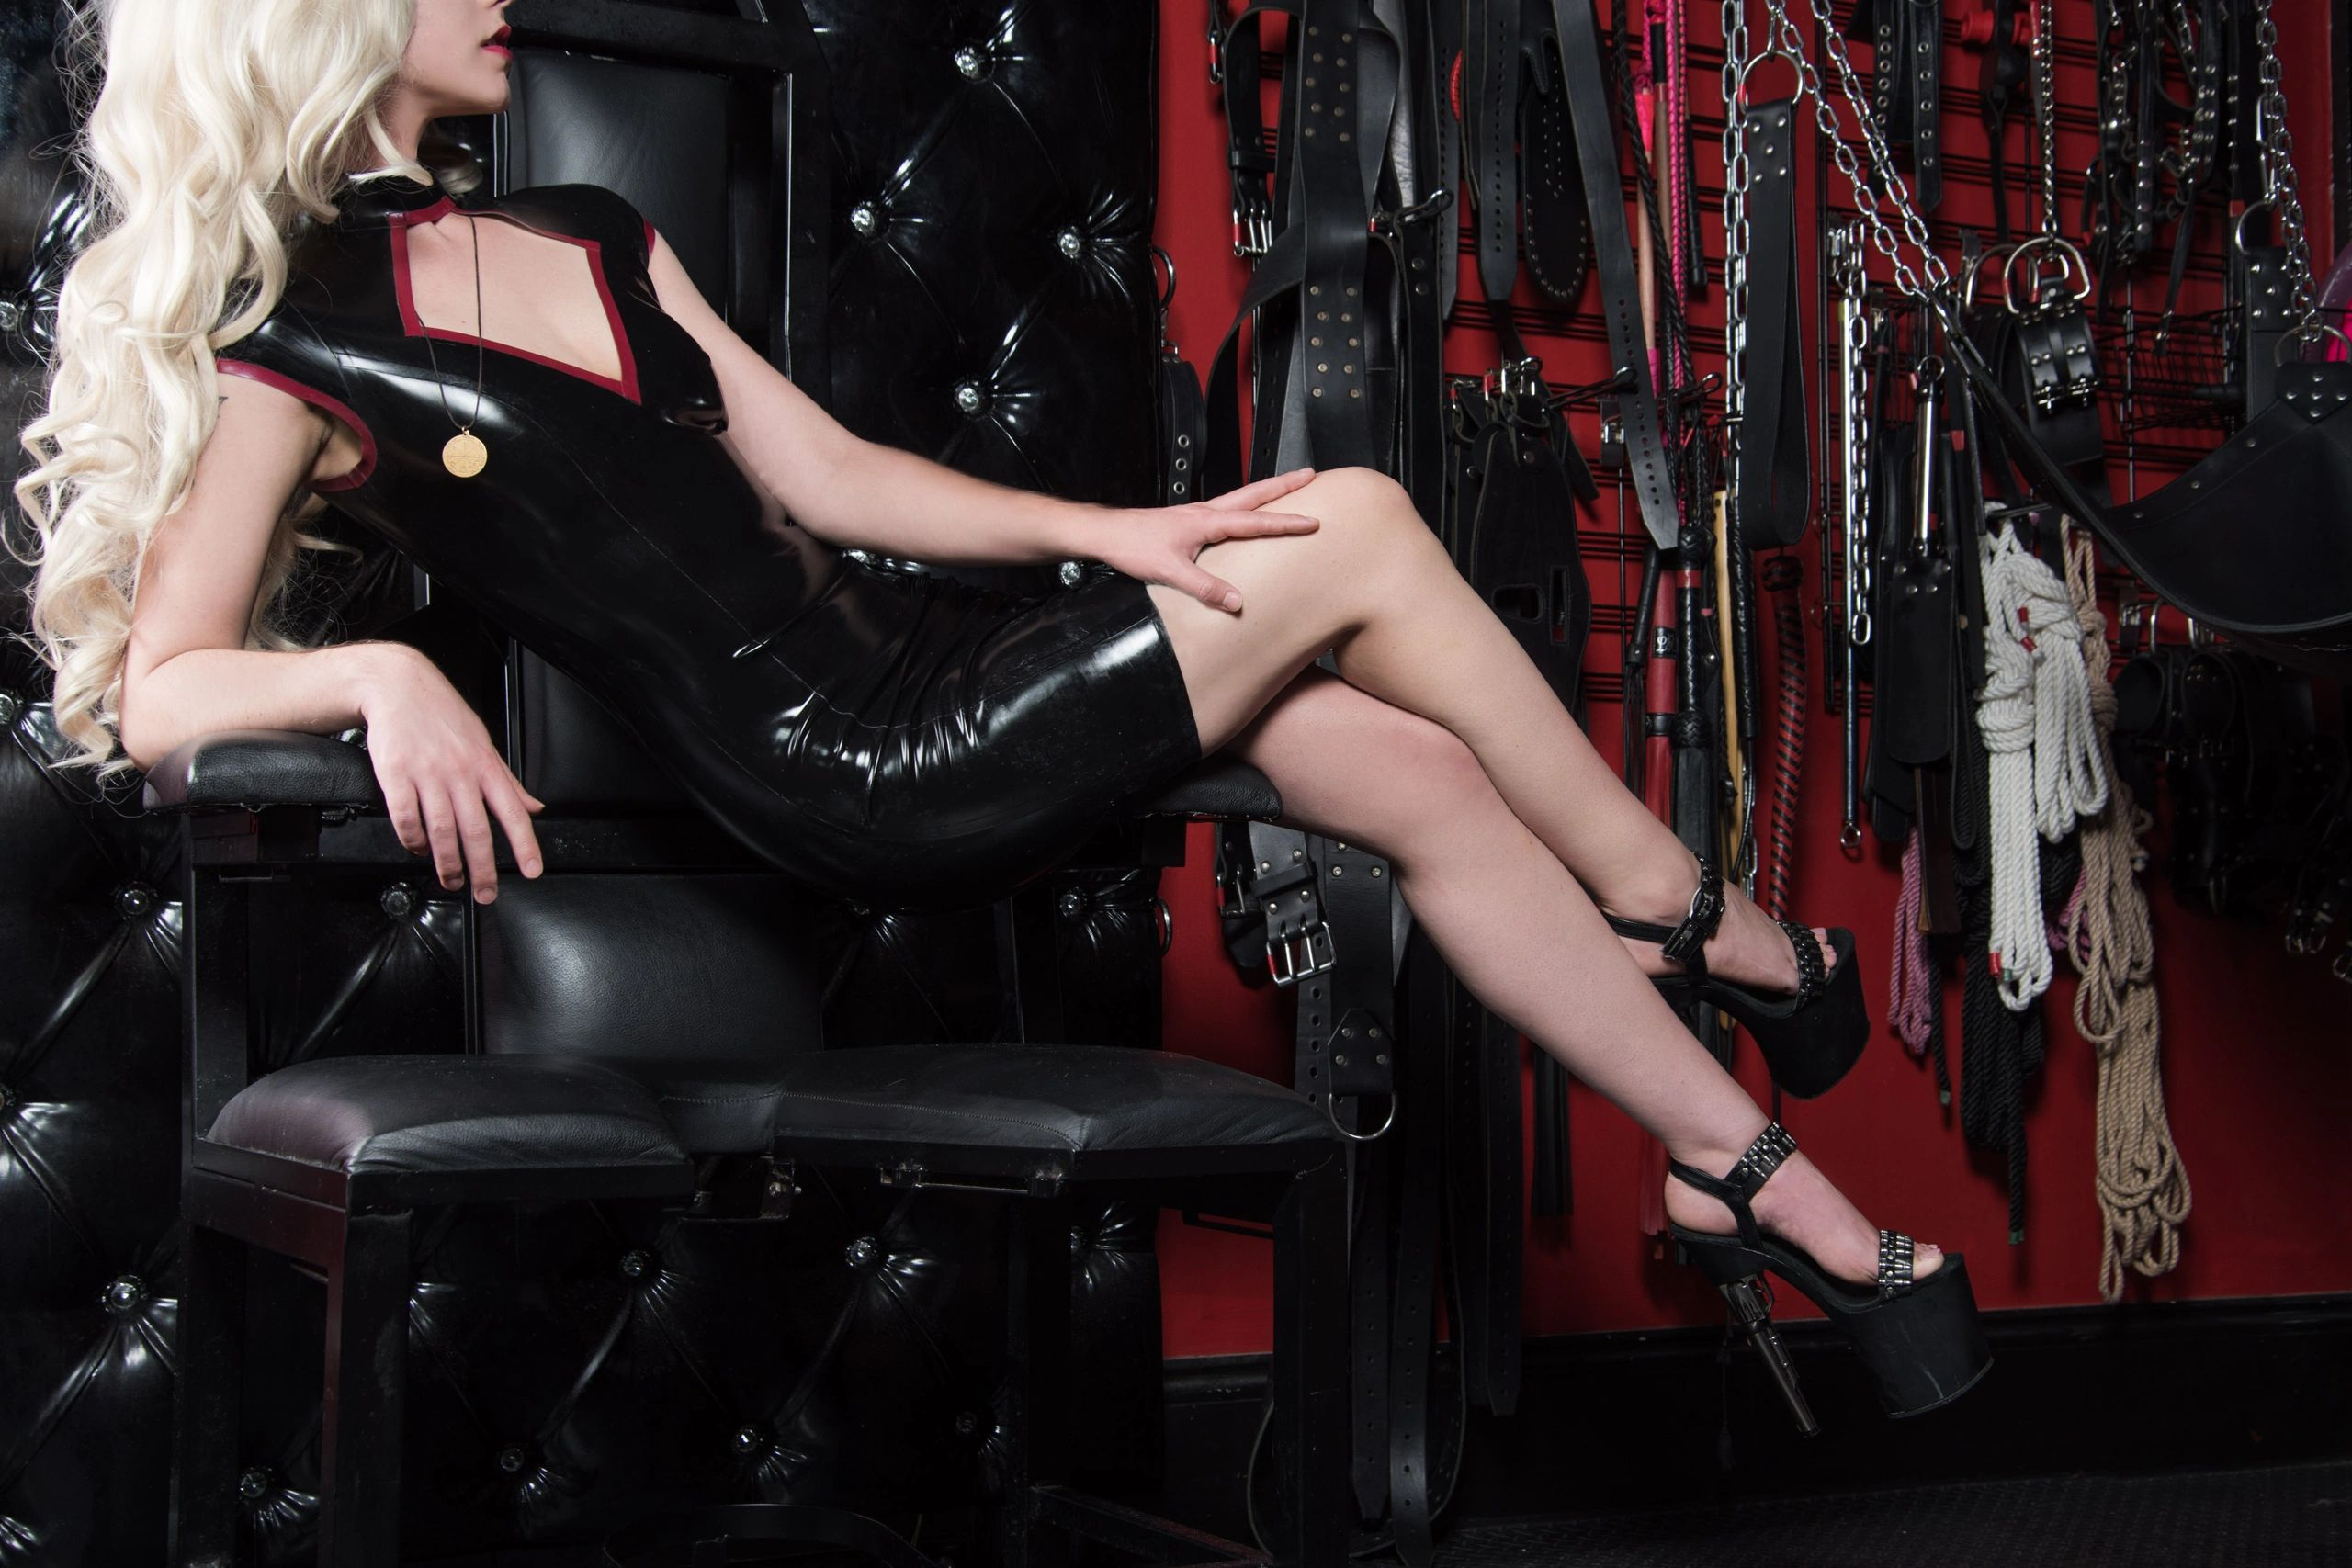 Mistress Samara, a white blond woman, wears a latex dress and reclines on a throne in a BDSM dungeon